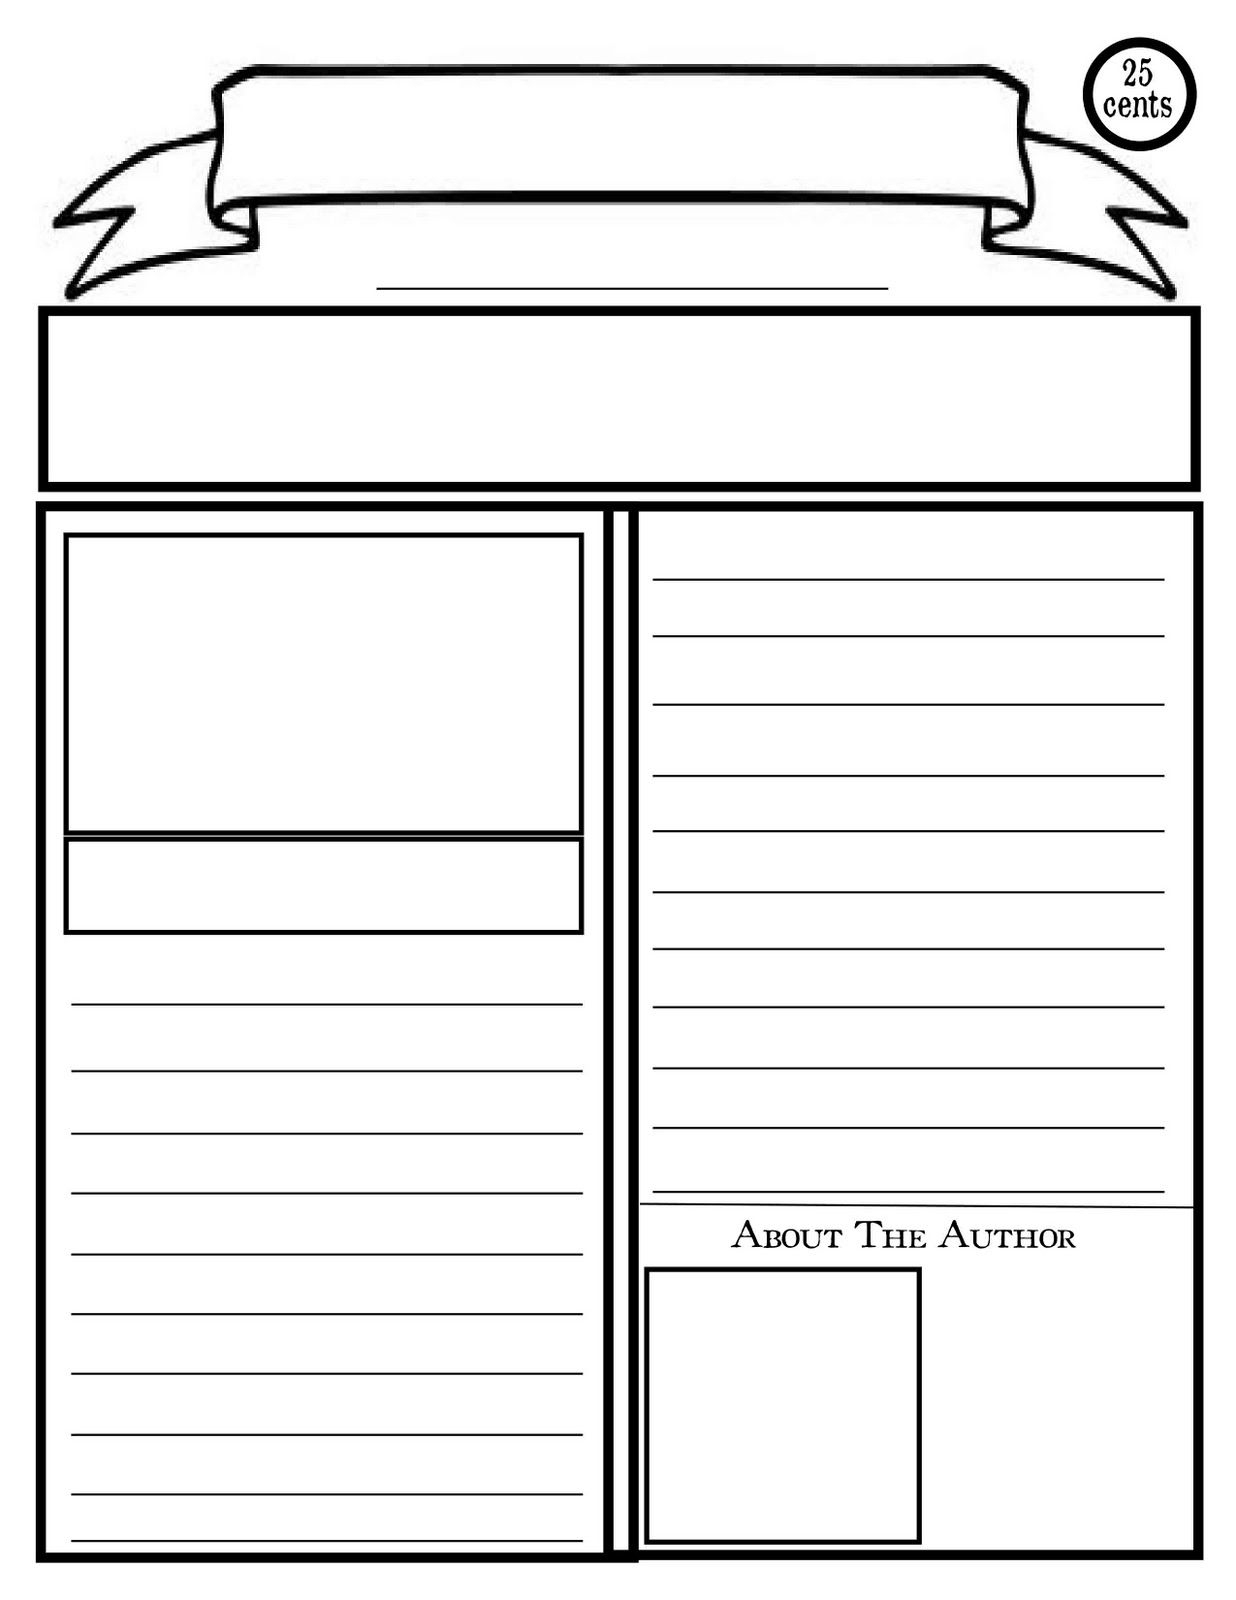 Blank Newspaper Template For Kids Printable | Homework Help - Free Printable Homework Templates